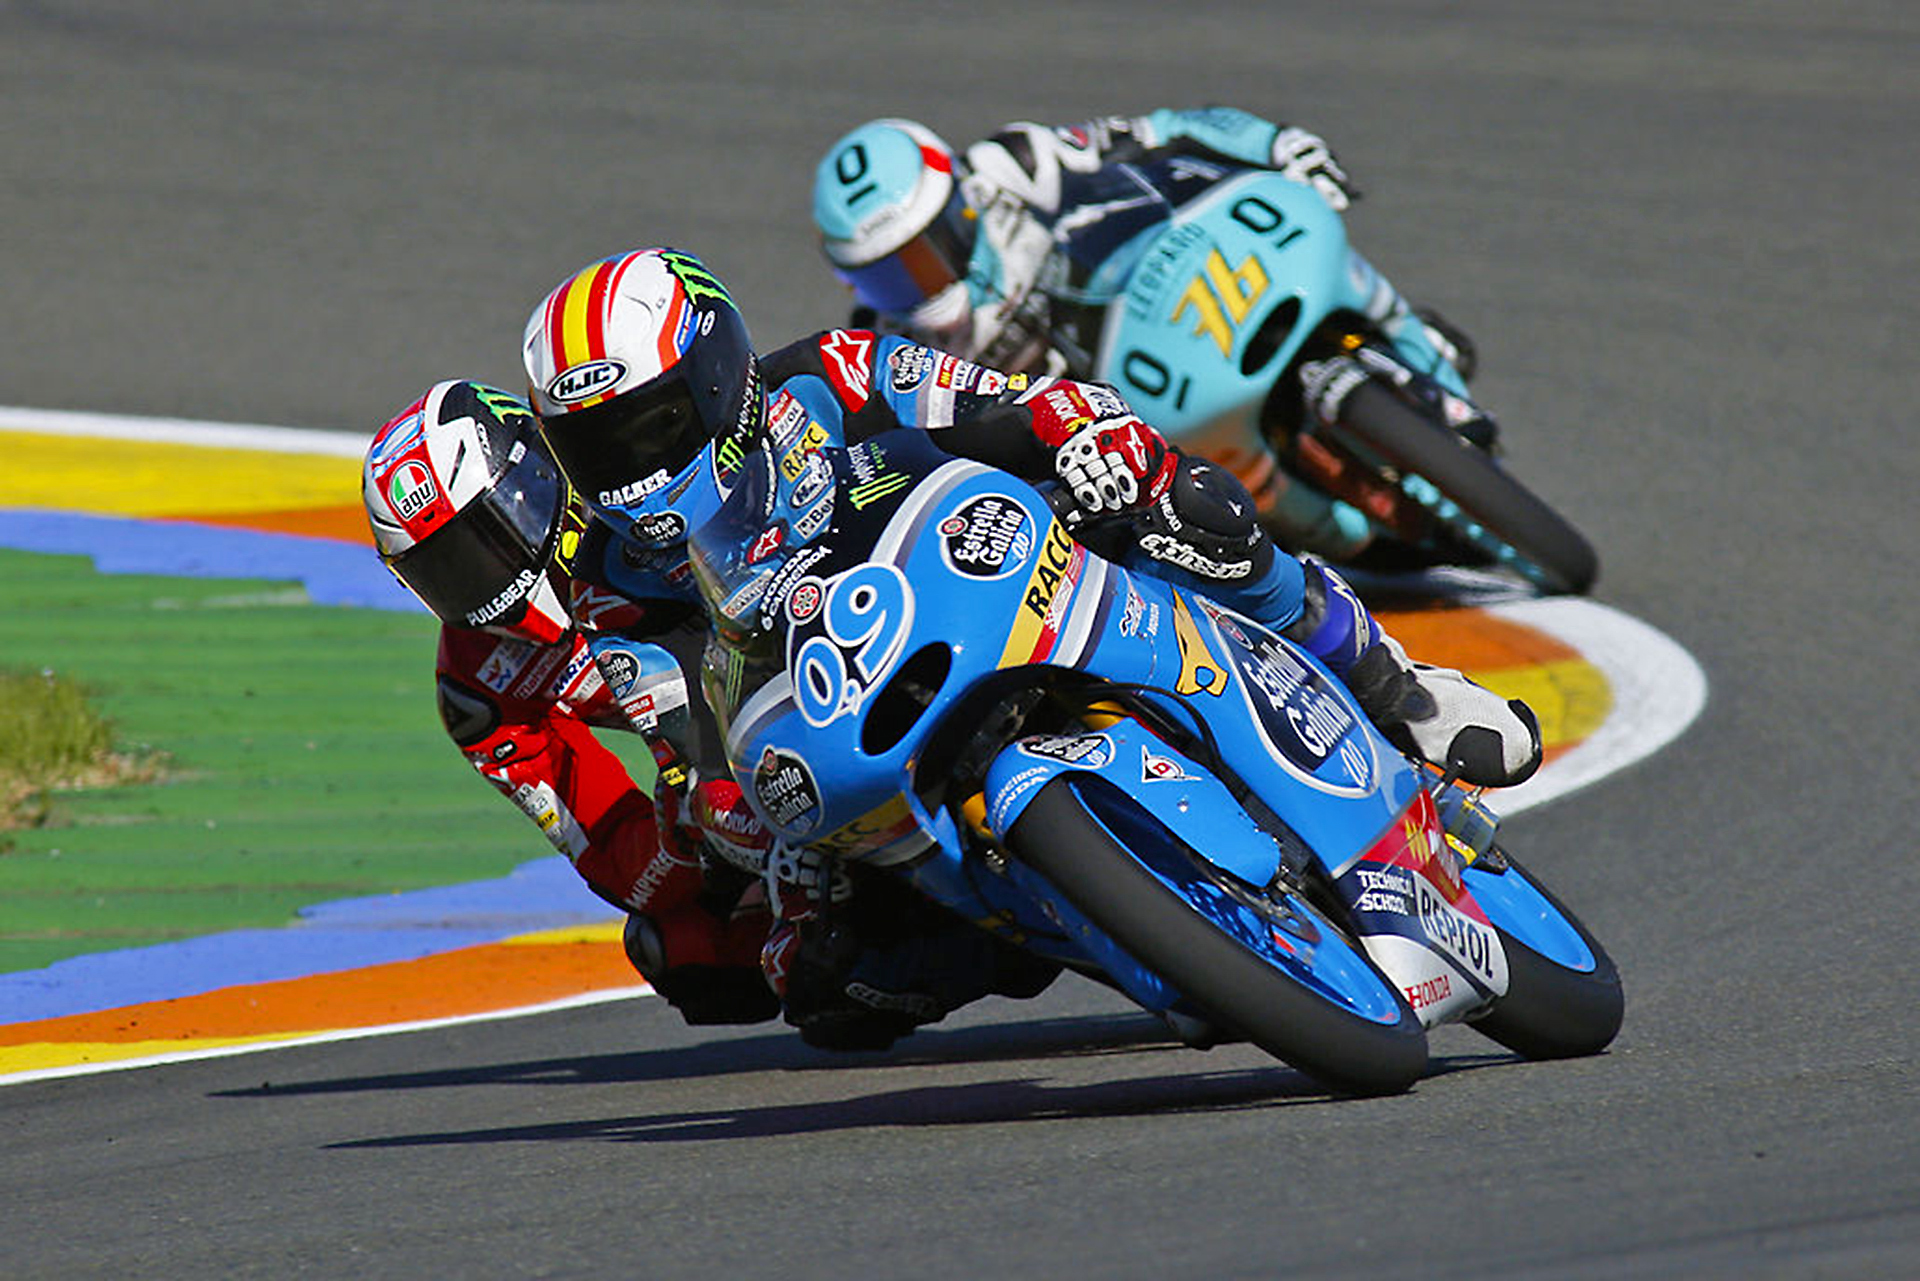 World Championship Moto3 at the Valencia Circuit